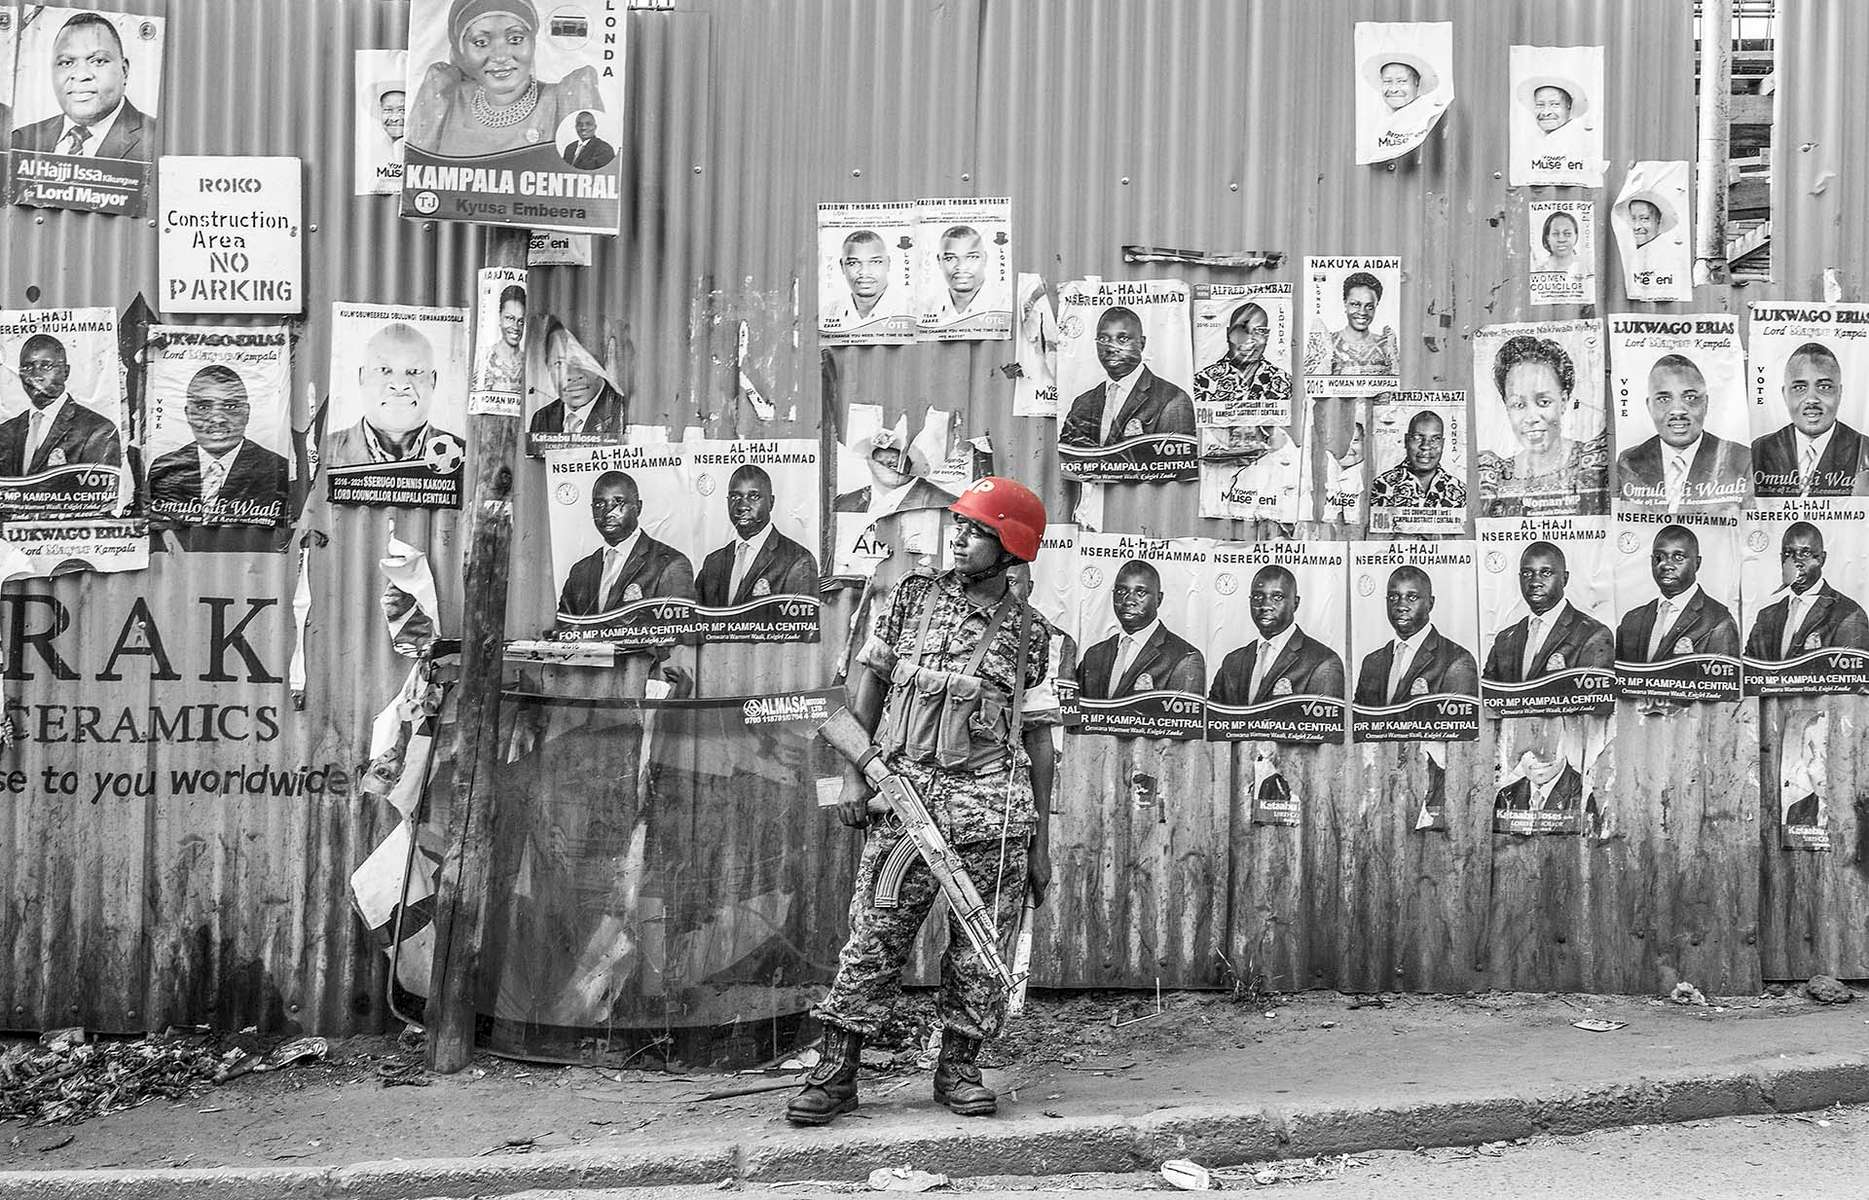 The opposition area was in virtual lockdown before, during and after the announcement of the victory for Yoweri Museveni, Uganda President and National Resistance Movement party presidential candidate, in capital Kampala February 20, 2016. Photo by Jiro Ose